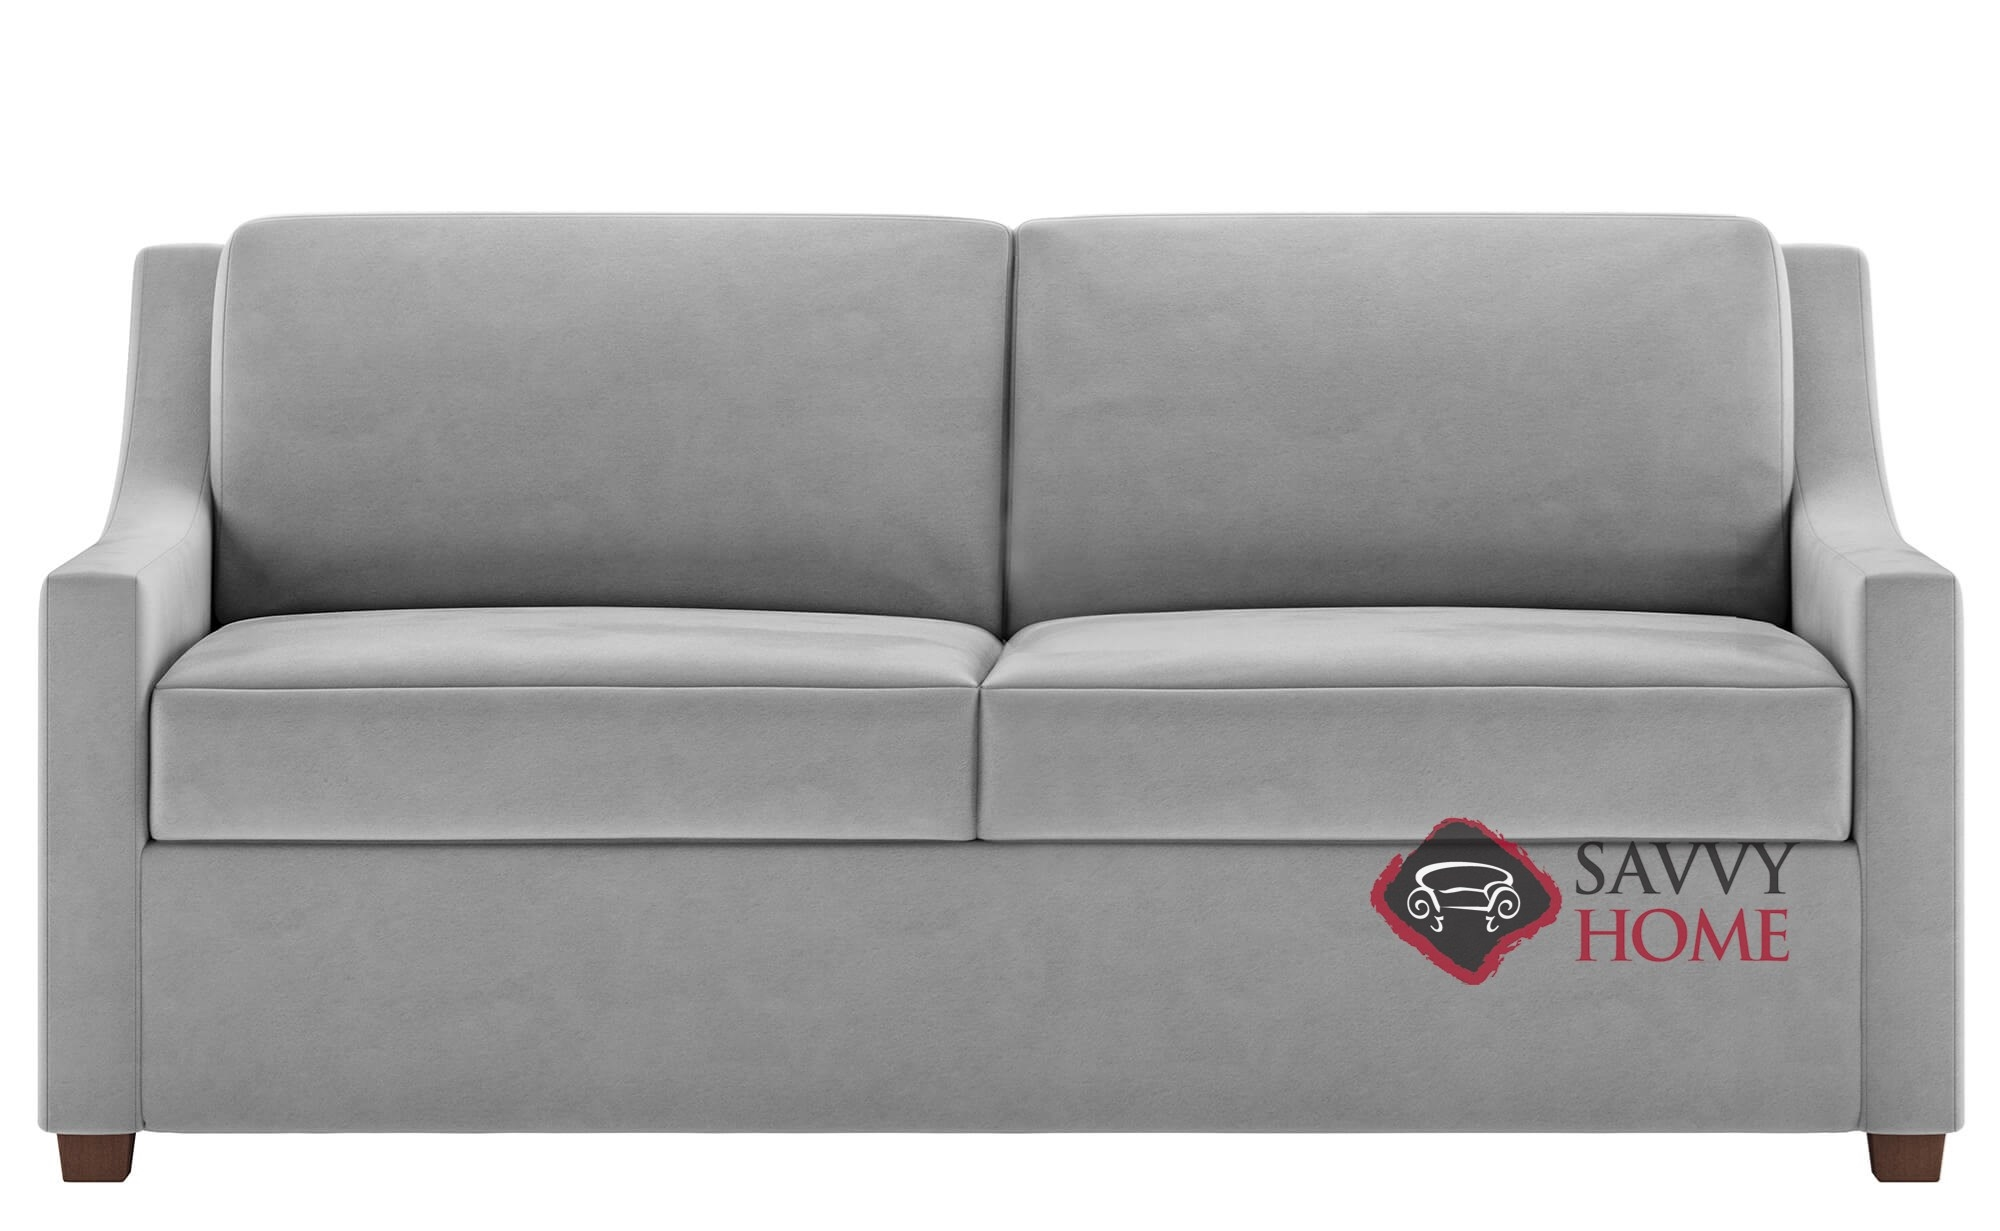 Perry Leather Sleeper Sofas Queen By